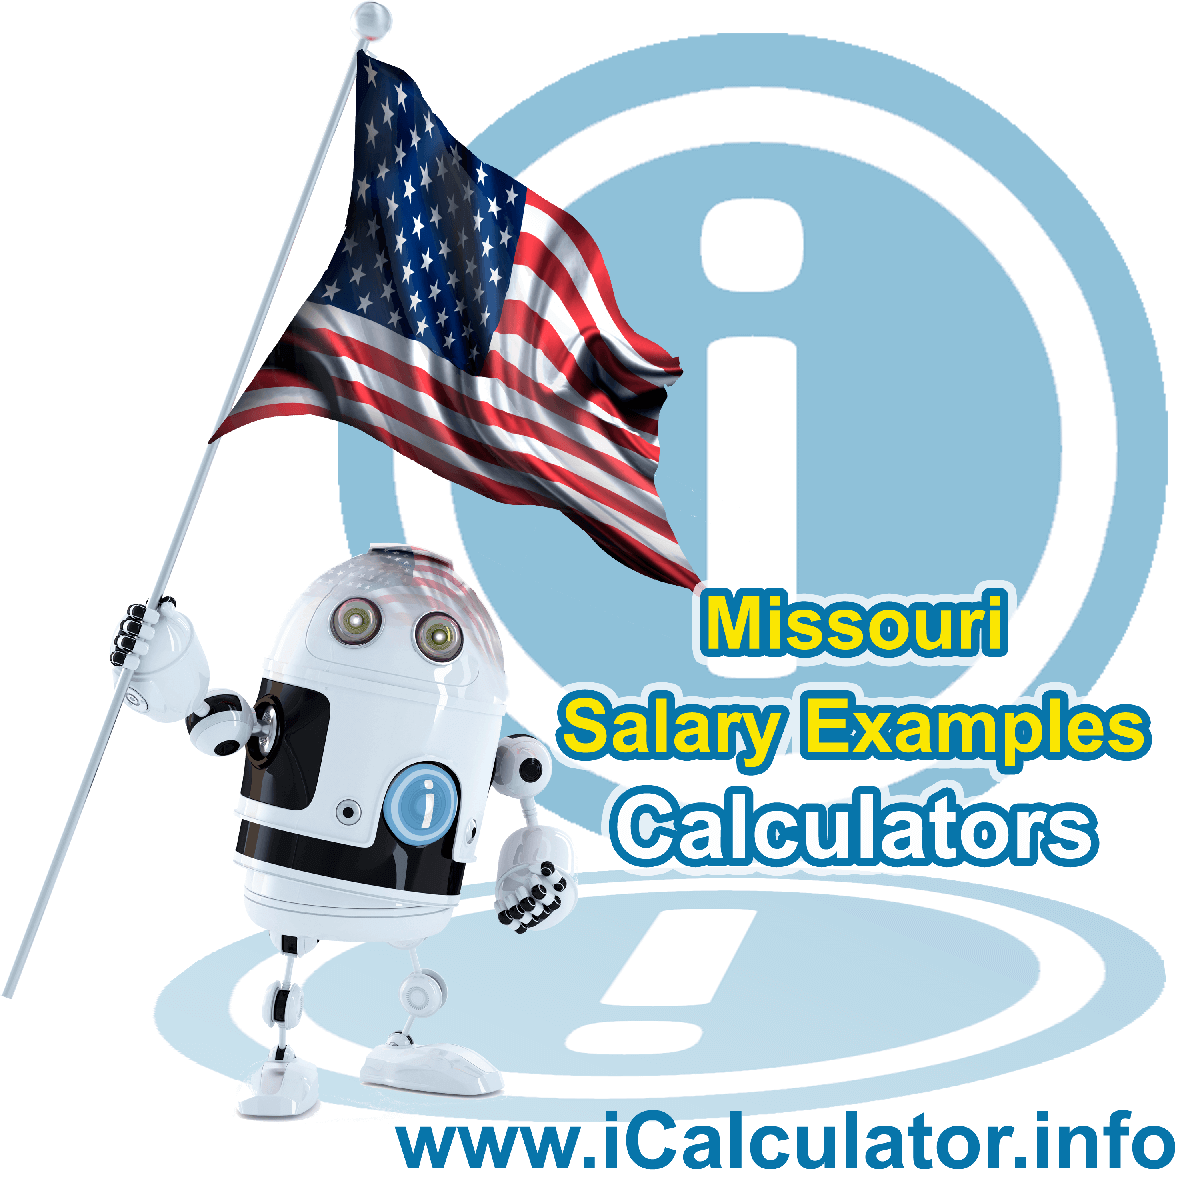 Missouri Salary Example for $90.00 in 2020 | iCalculator | $90.00 salary example for employee and employer paying Missouri State tincome taxes. Detailed salary after tax calculation including Missouri State Tax, Federal State Tax, Medicare Deductions, Social Security, Capital Gains and other income tax and salary deductions complete with supporting Missouri state tax tables